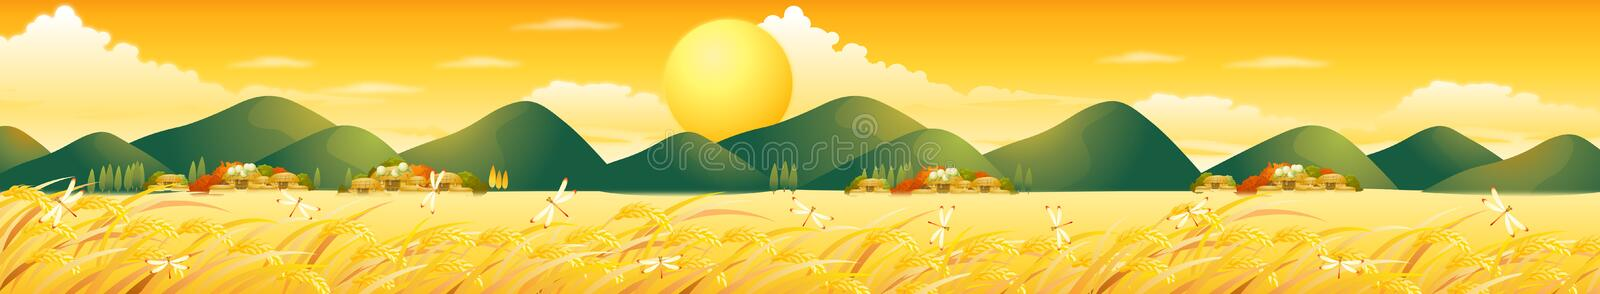 Summer Field With Houses Hills Big Sun Graines and DragonFly royalty free stock images